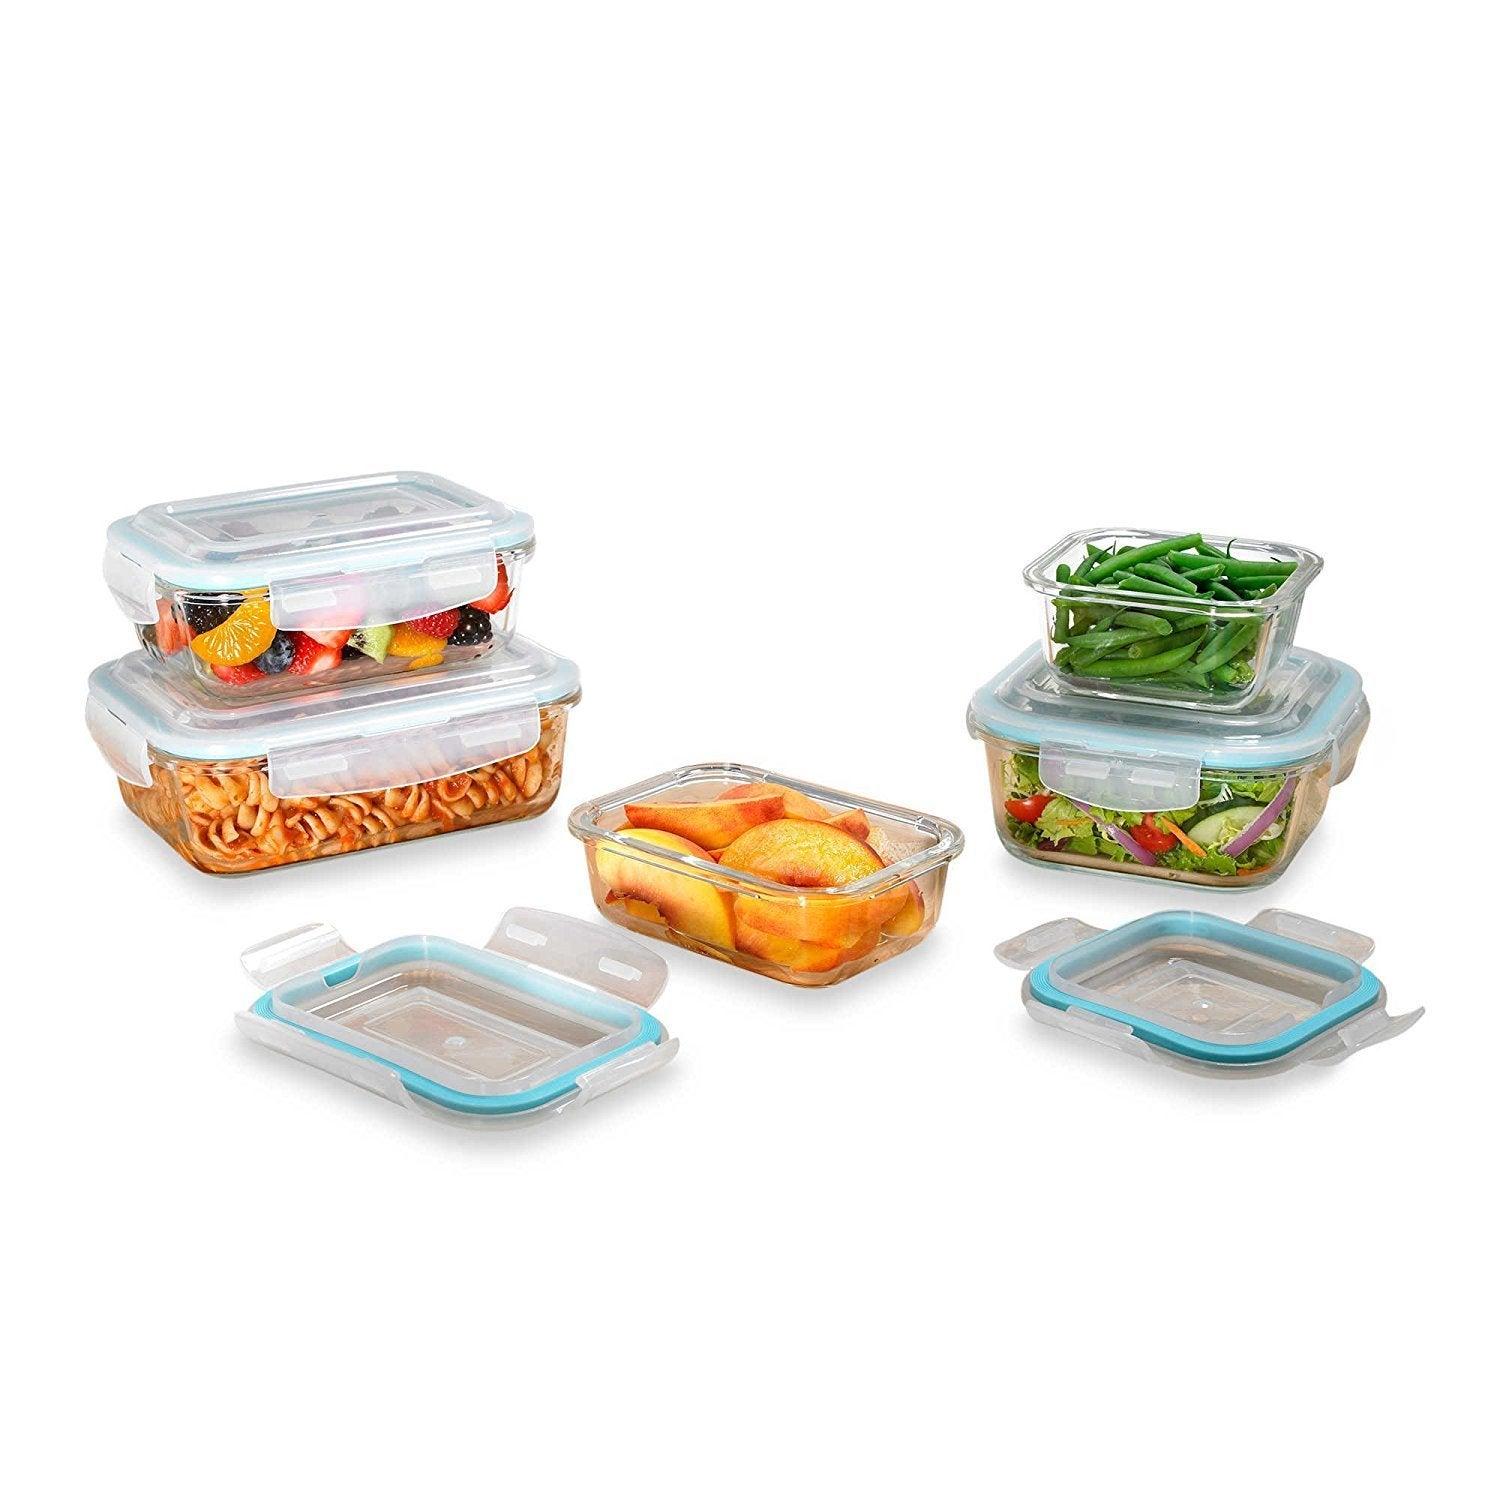 Shop Clear Glass Food Storage Container 10 Piece Set With Locking Lids    Free Shipping On Orders Over $45   Overstock.com   12804826